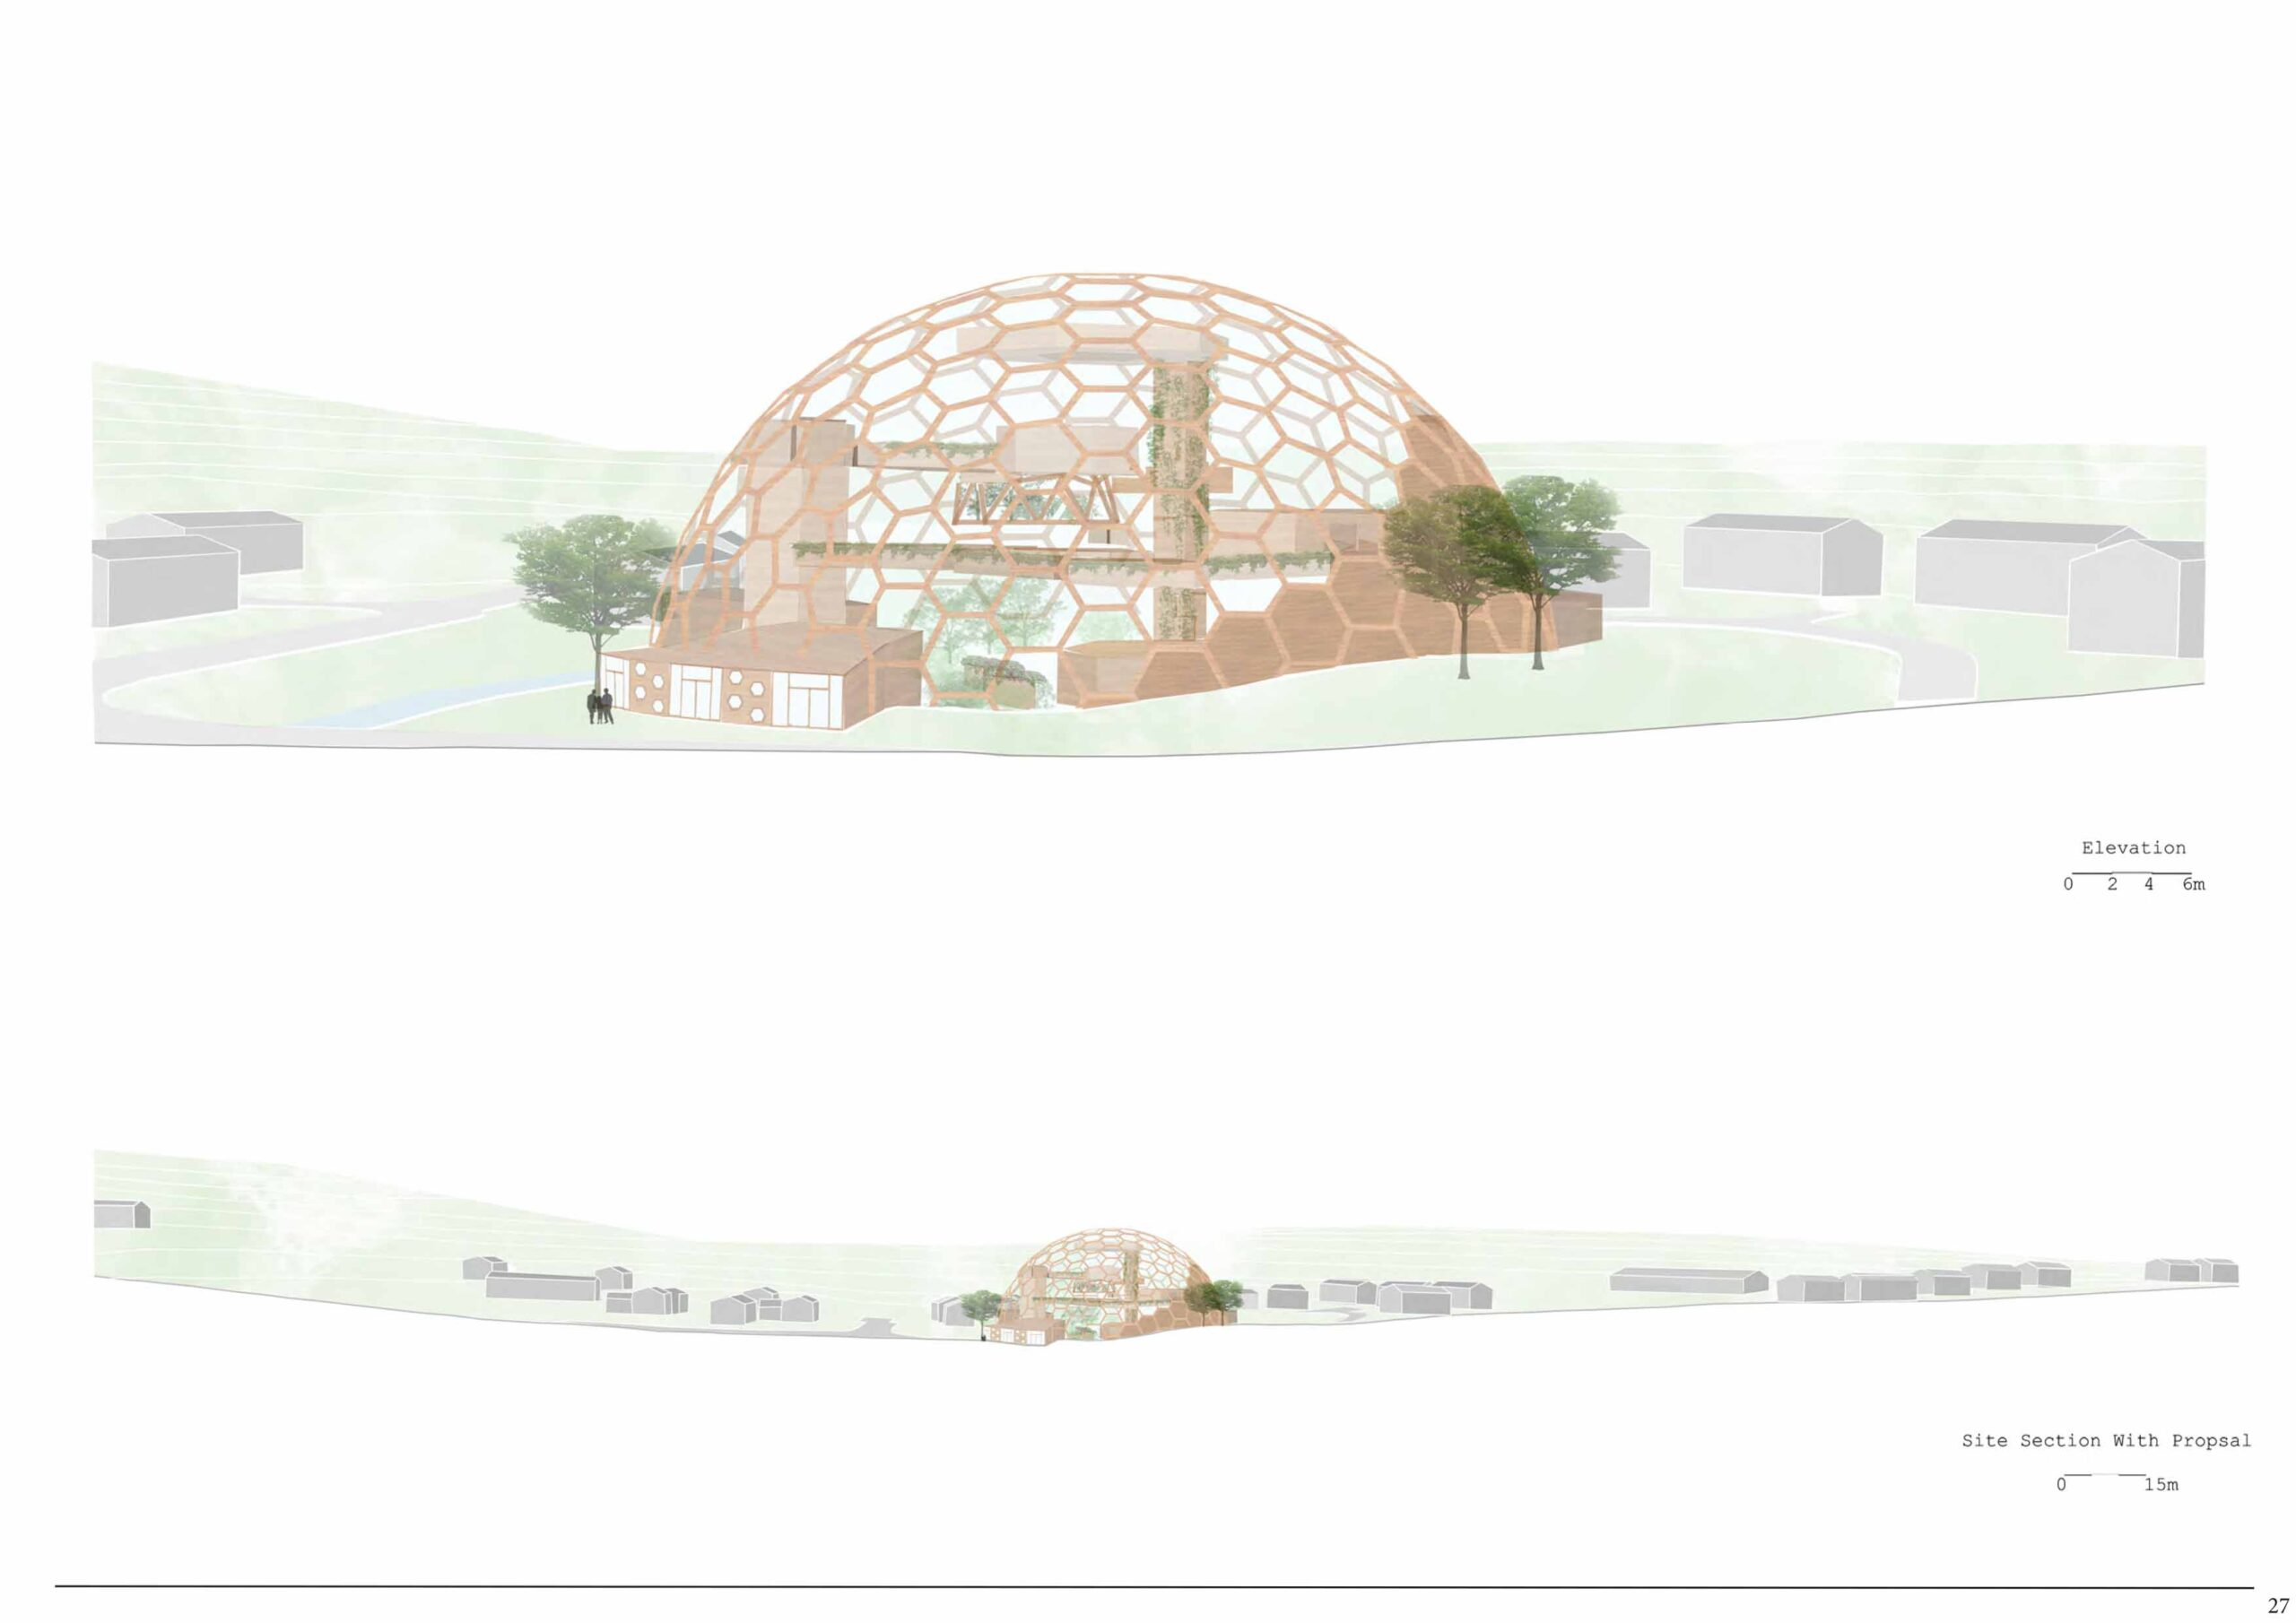 The design responds to the landscape and the natural curvature of the site. The dome creates transformative architecture that is at the edge of what is possible in terms of structure and function.